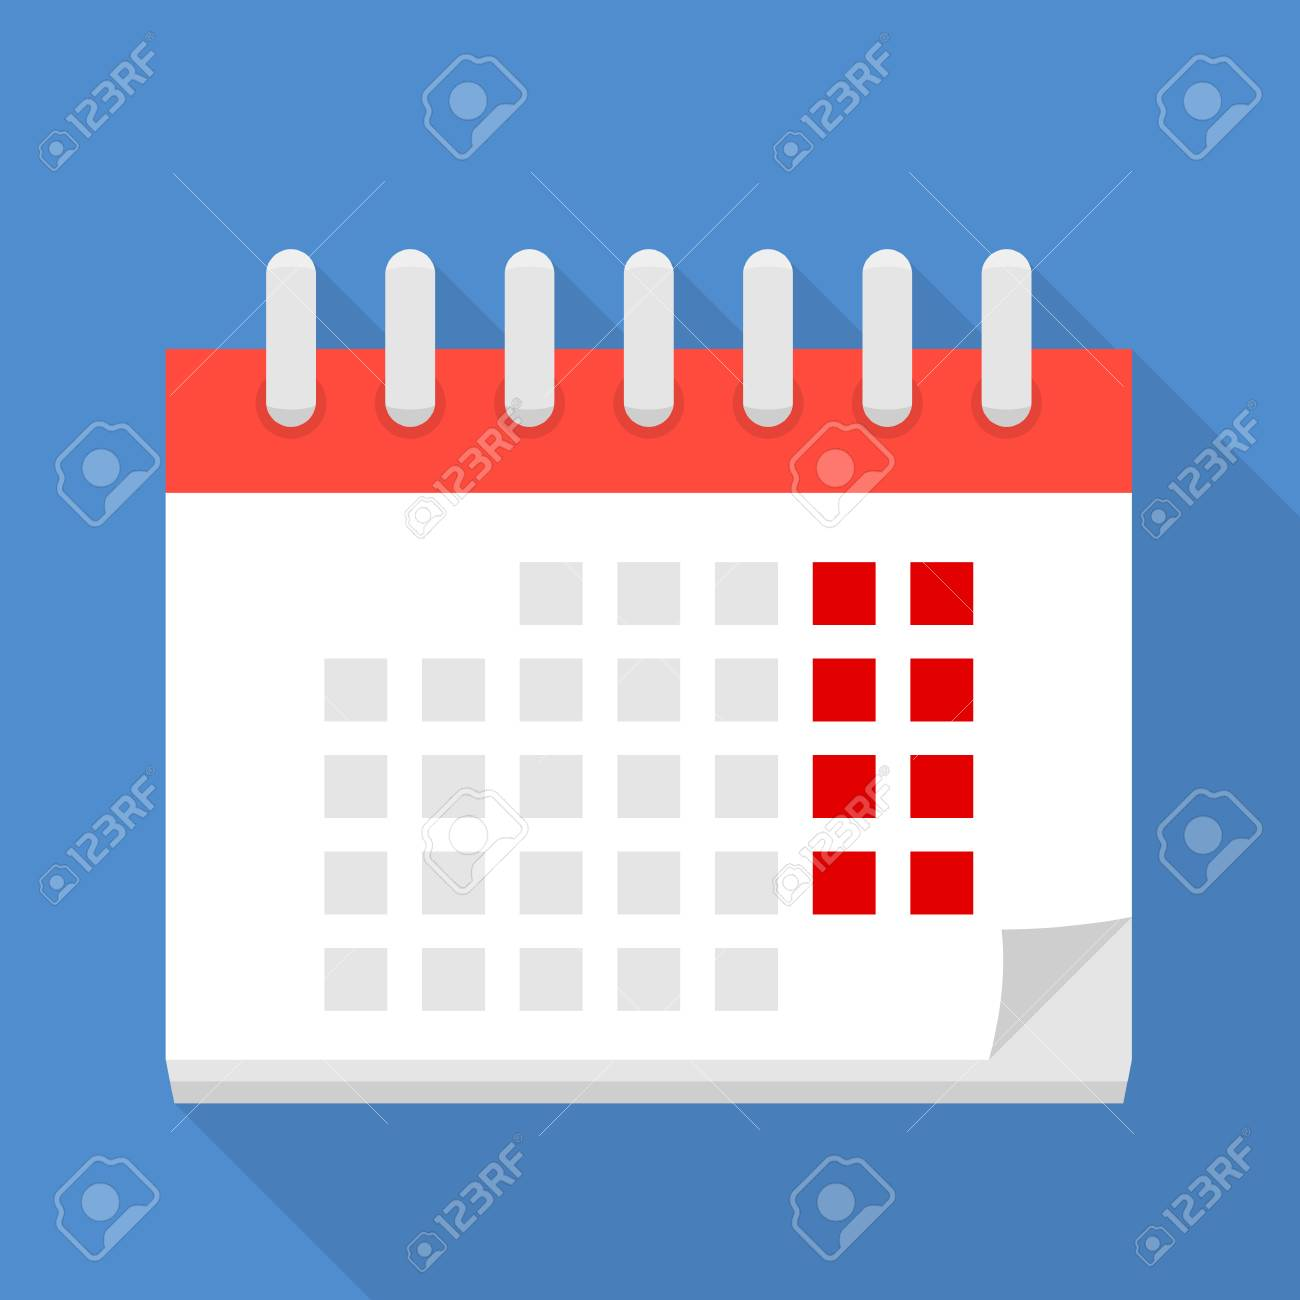 Big Calendar Icon Flat Style Stock Photo Picture And Royalty Free